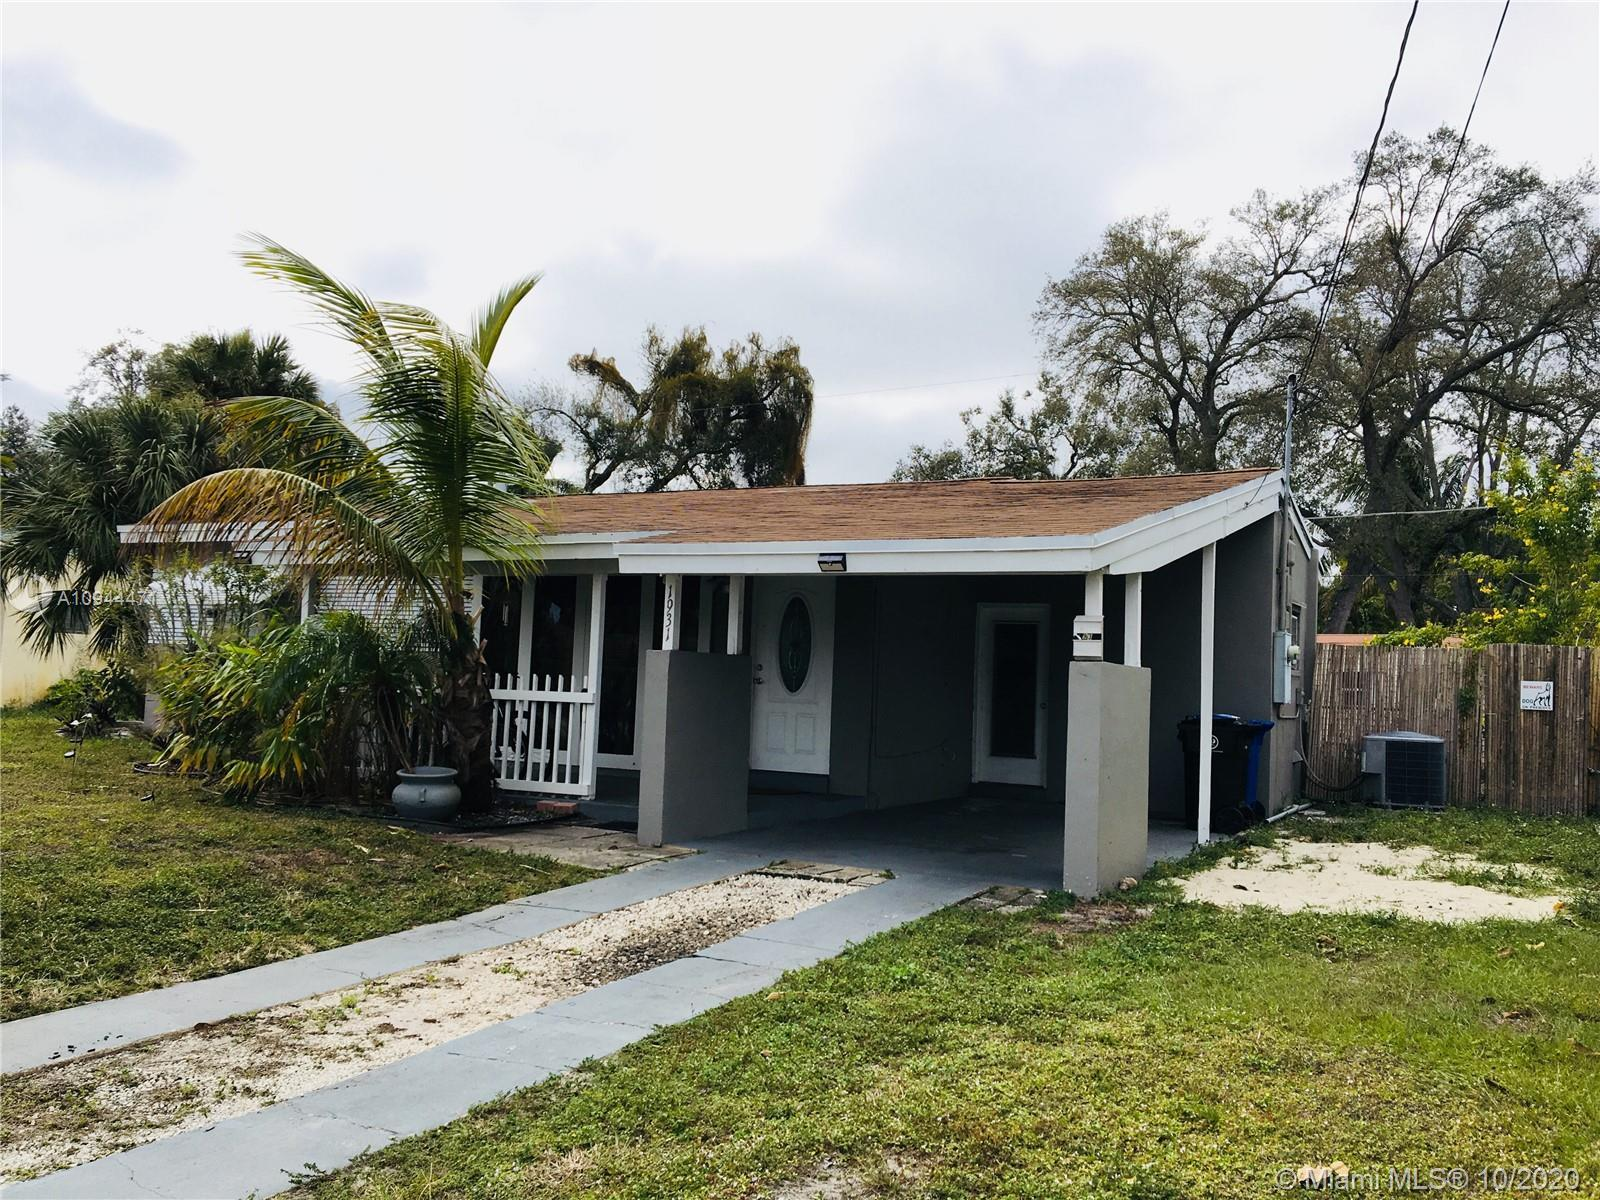 Great home in the desirable area of Fort Lauderdale, Florida. The property is in good condition and